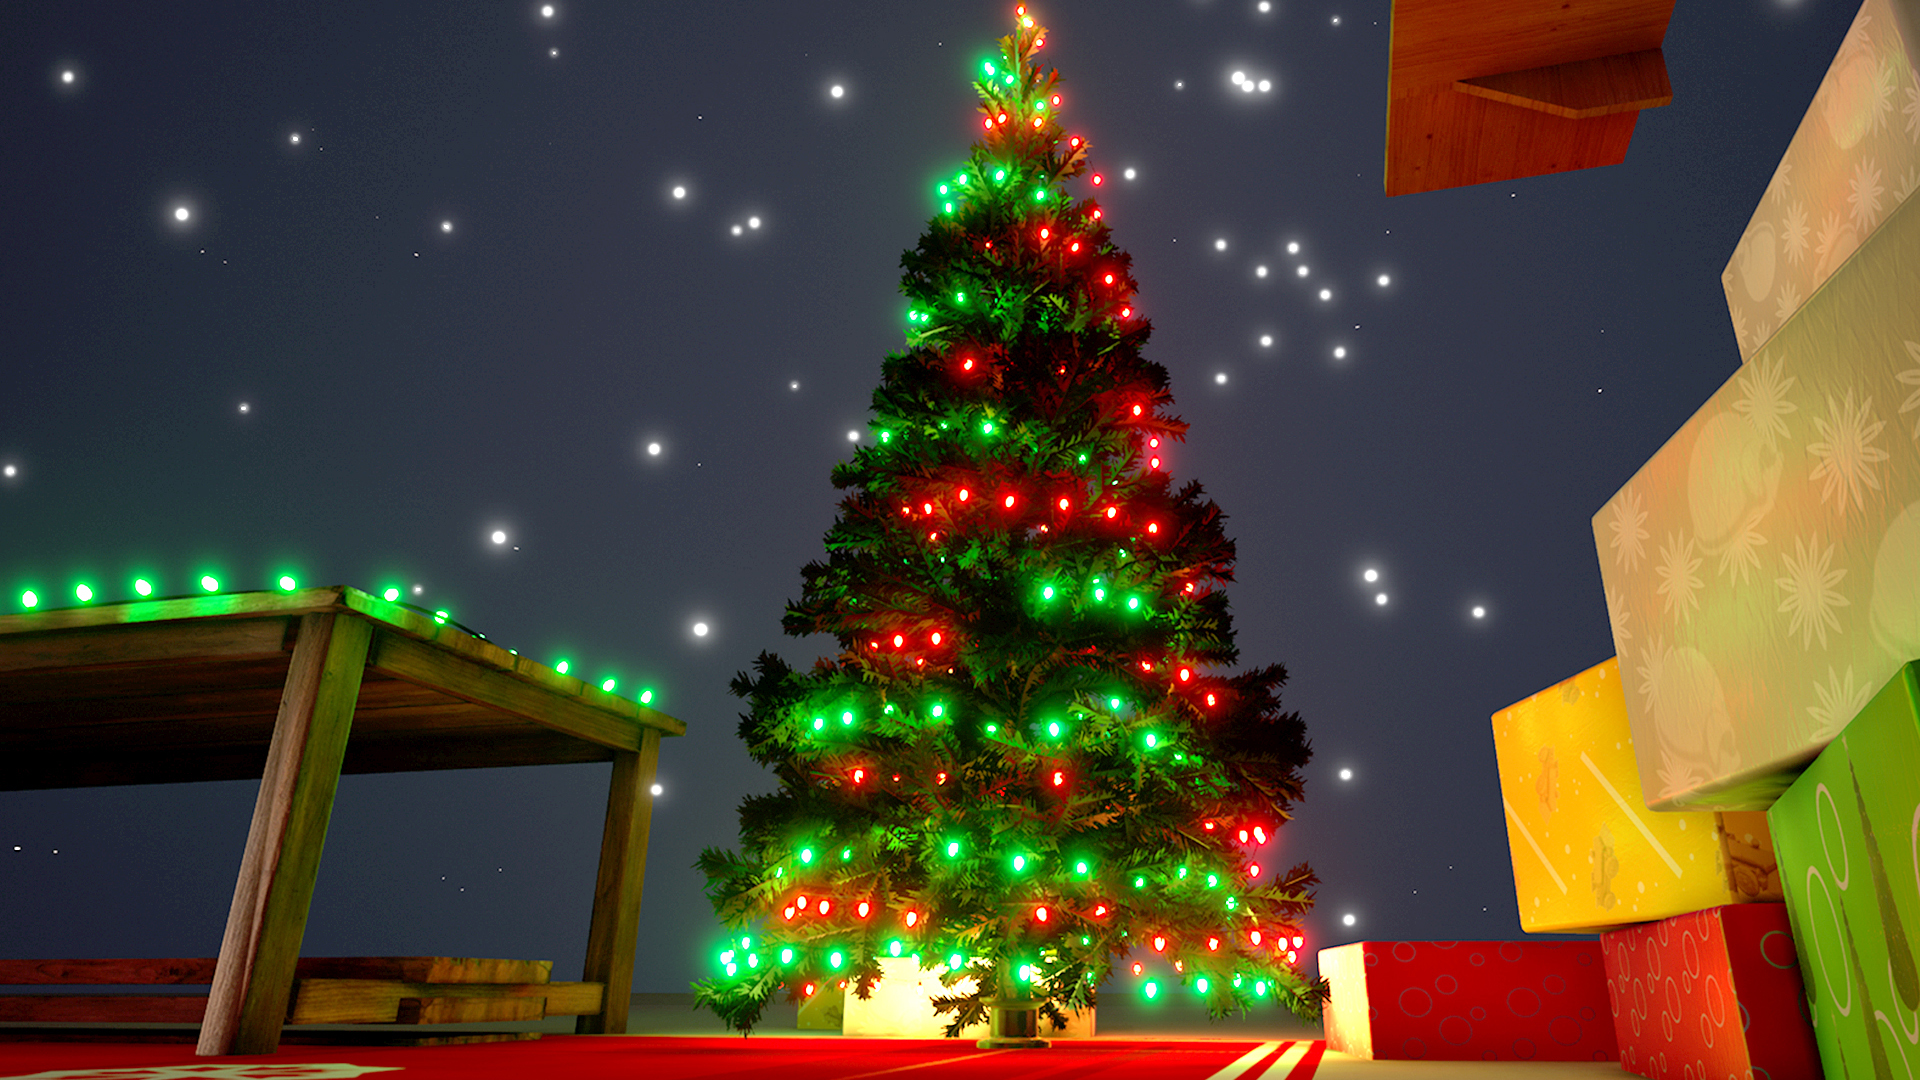 ChristmasTree screenshot